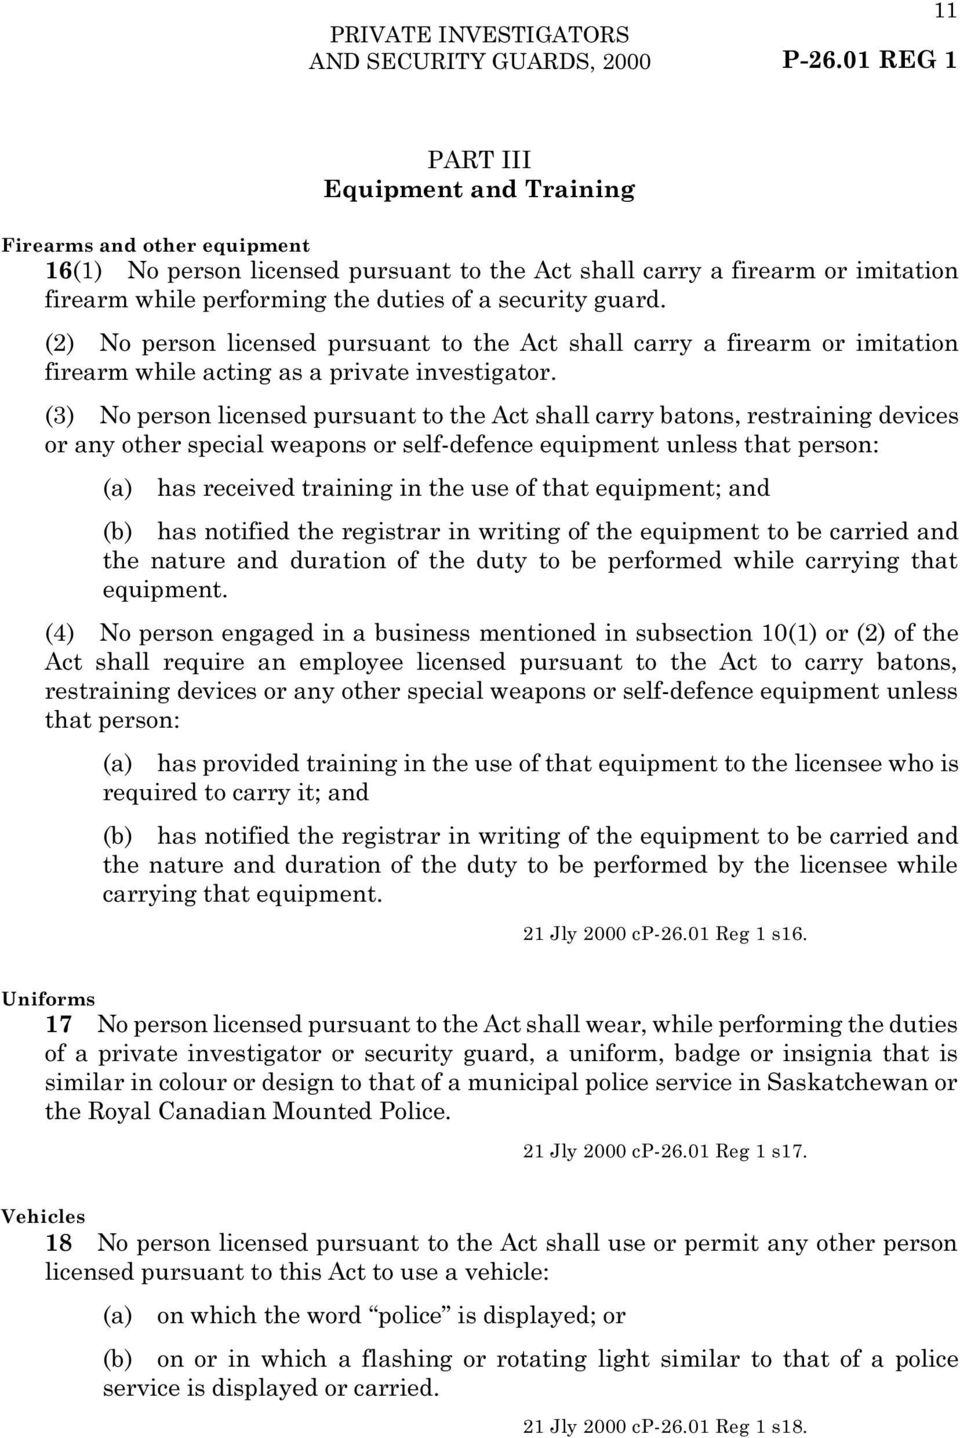 guard. (2) No person licensed pursuant to the Act shall carry a firearm or imitation firearm while acting as a private investigator.